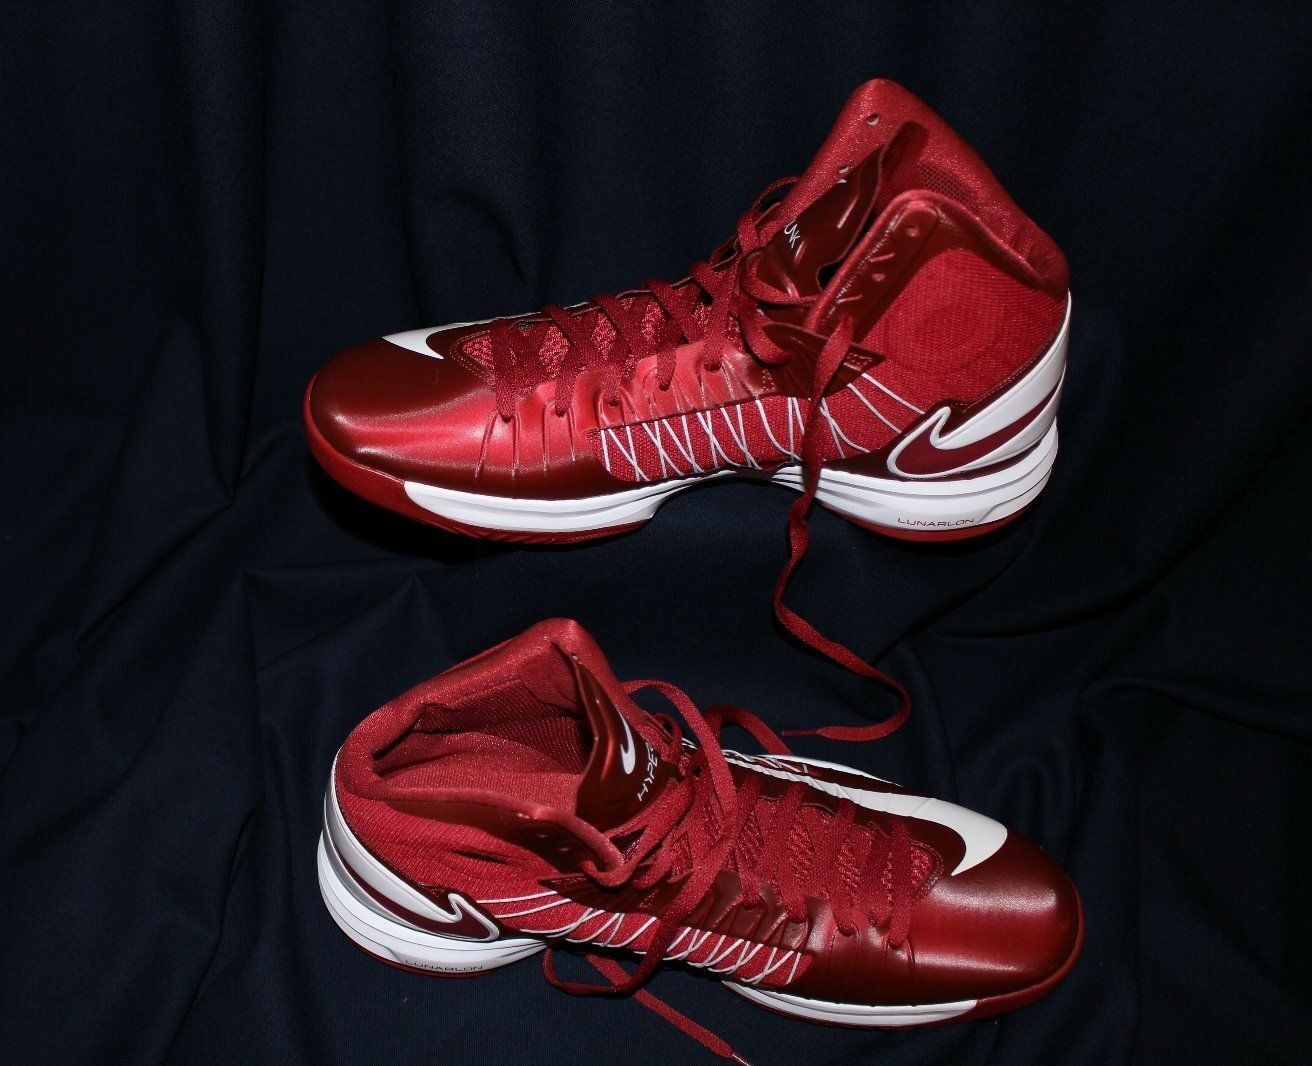 new style 59227 0c9dd NIKE HYPERDUNK LUNARLON  NWOB  Burgundy rosso and bianca Athletic scarpe  Dimensione 15 478f7f